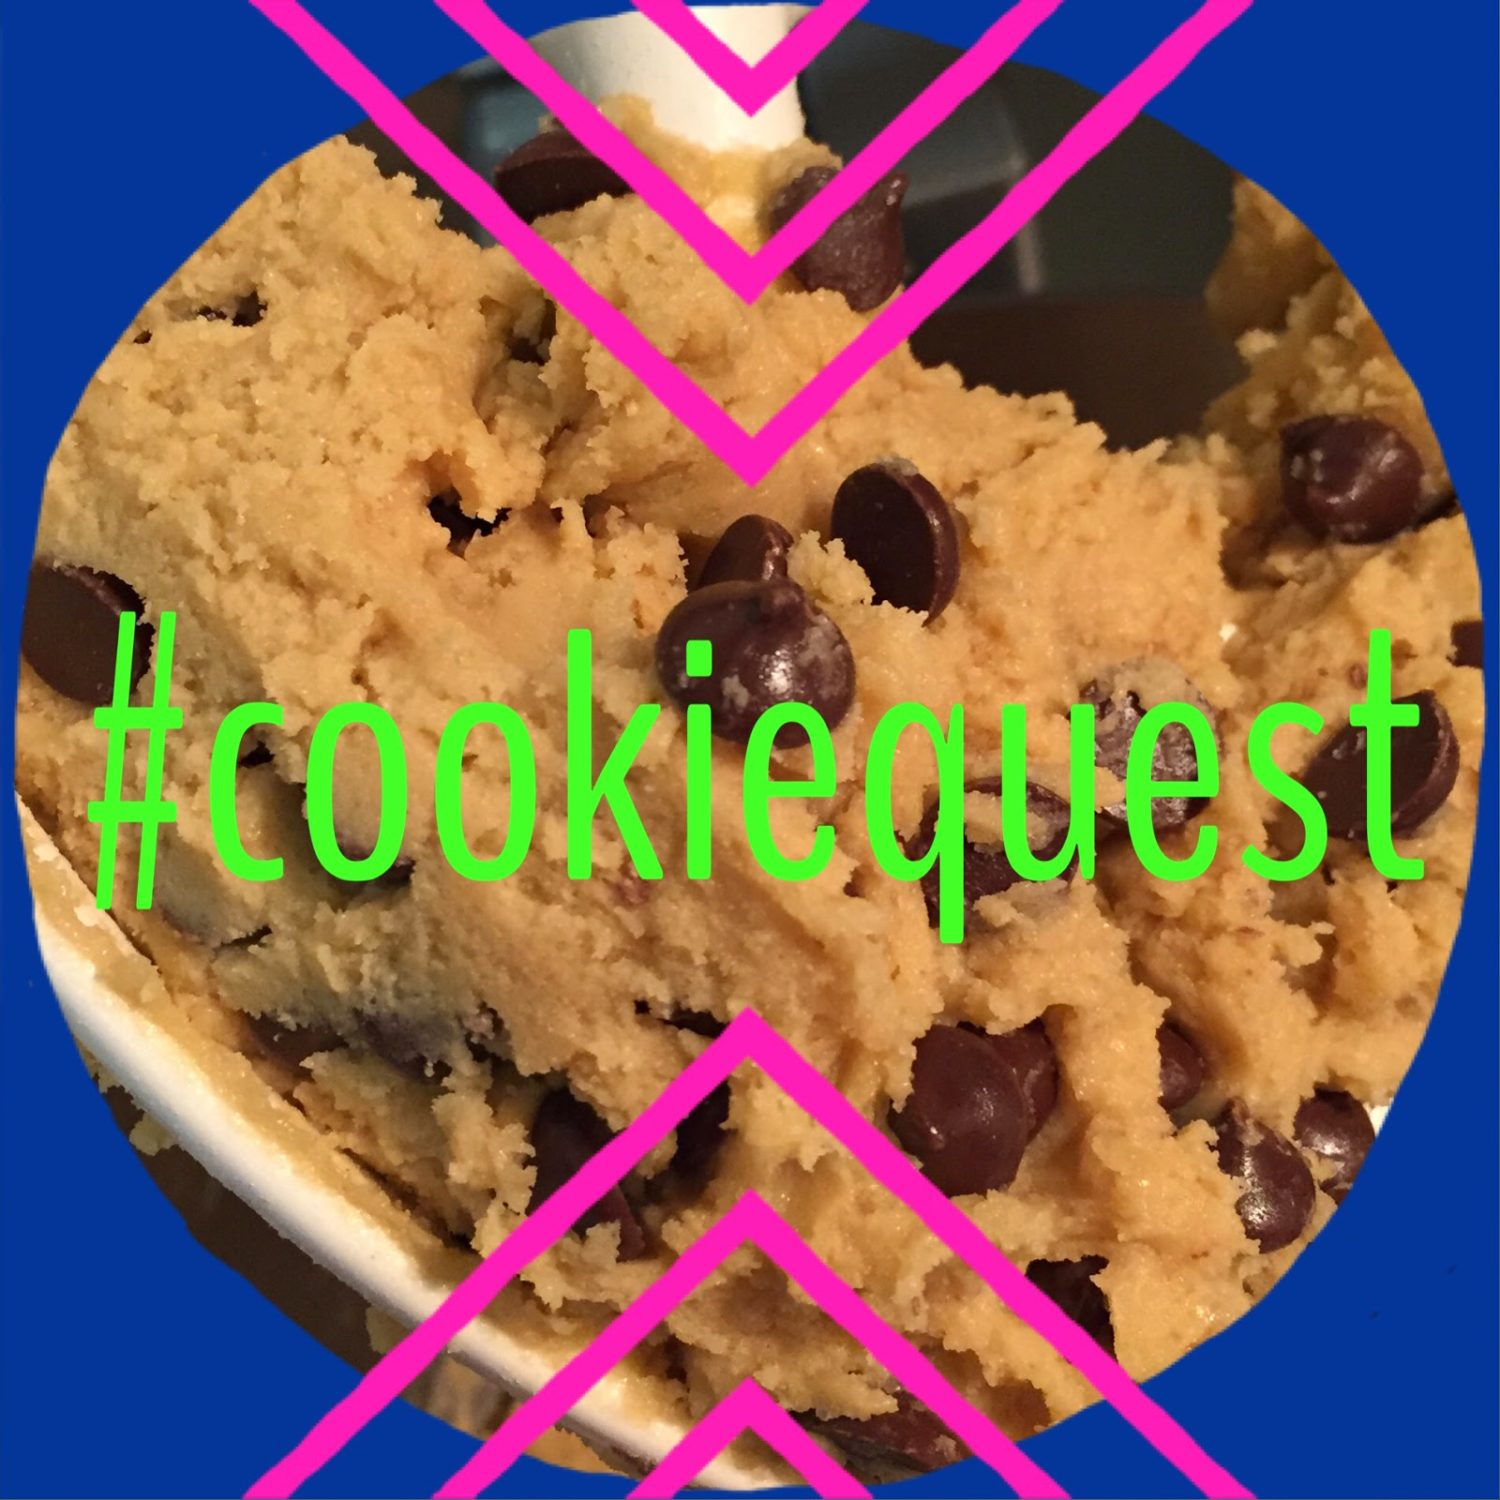 My Quest – #cookiequest